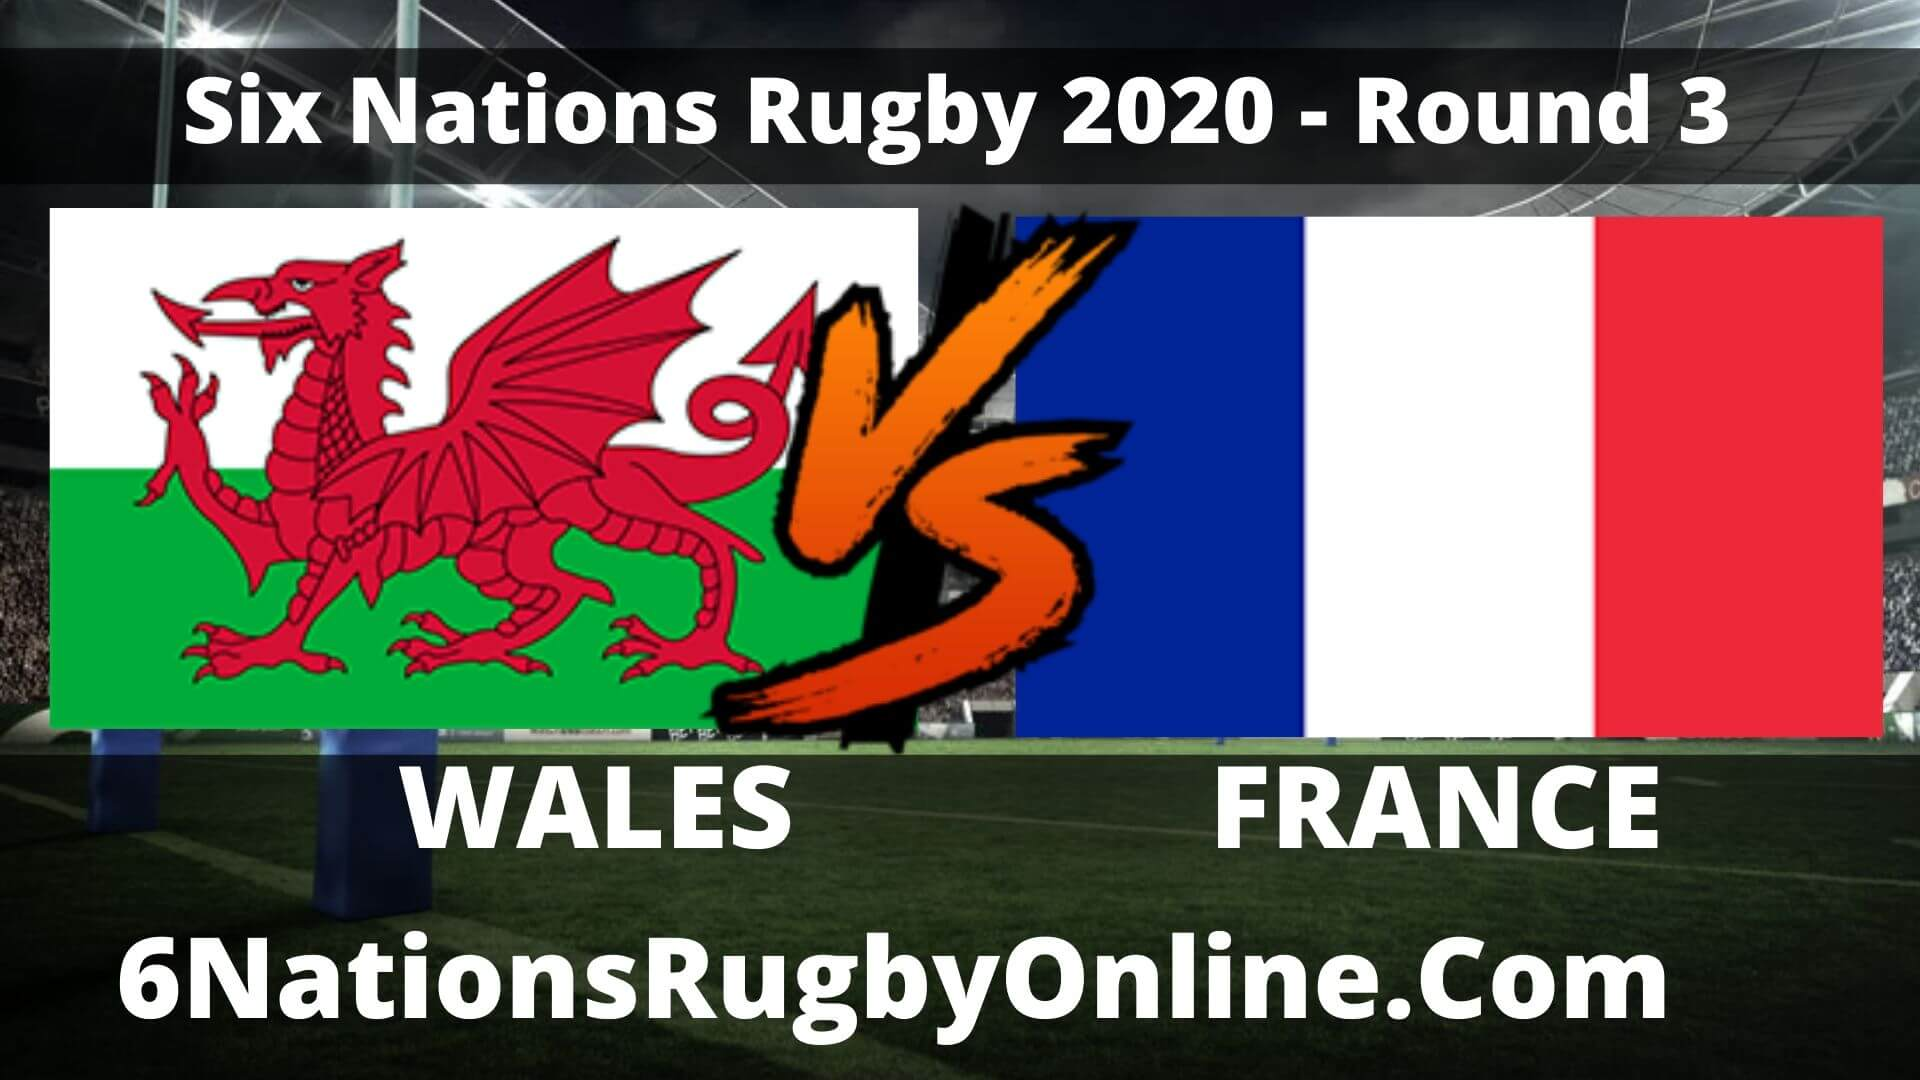 Wales vs France Live Stream 2020 Round 3 | Match Replay